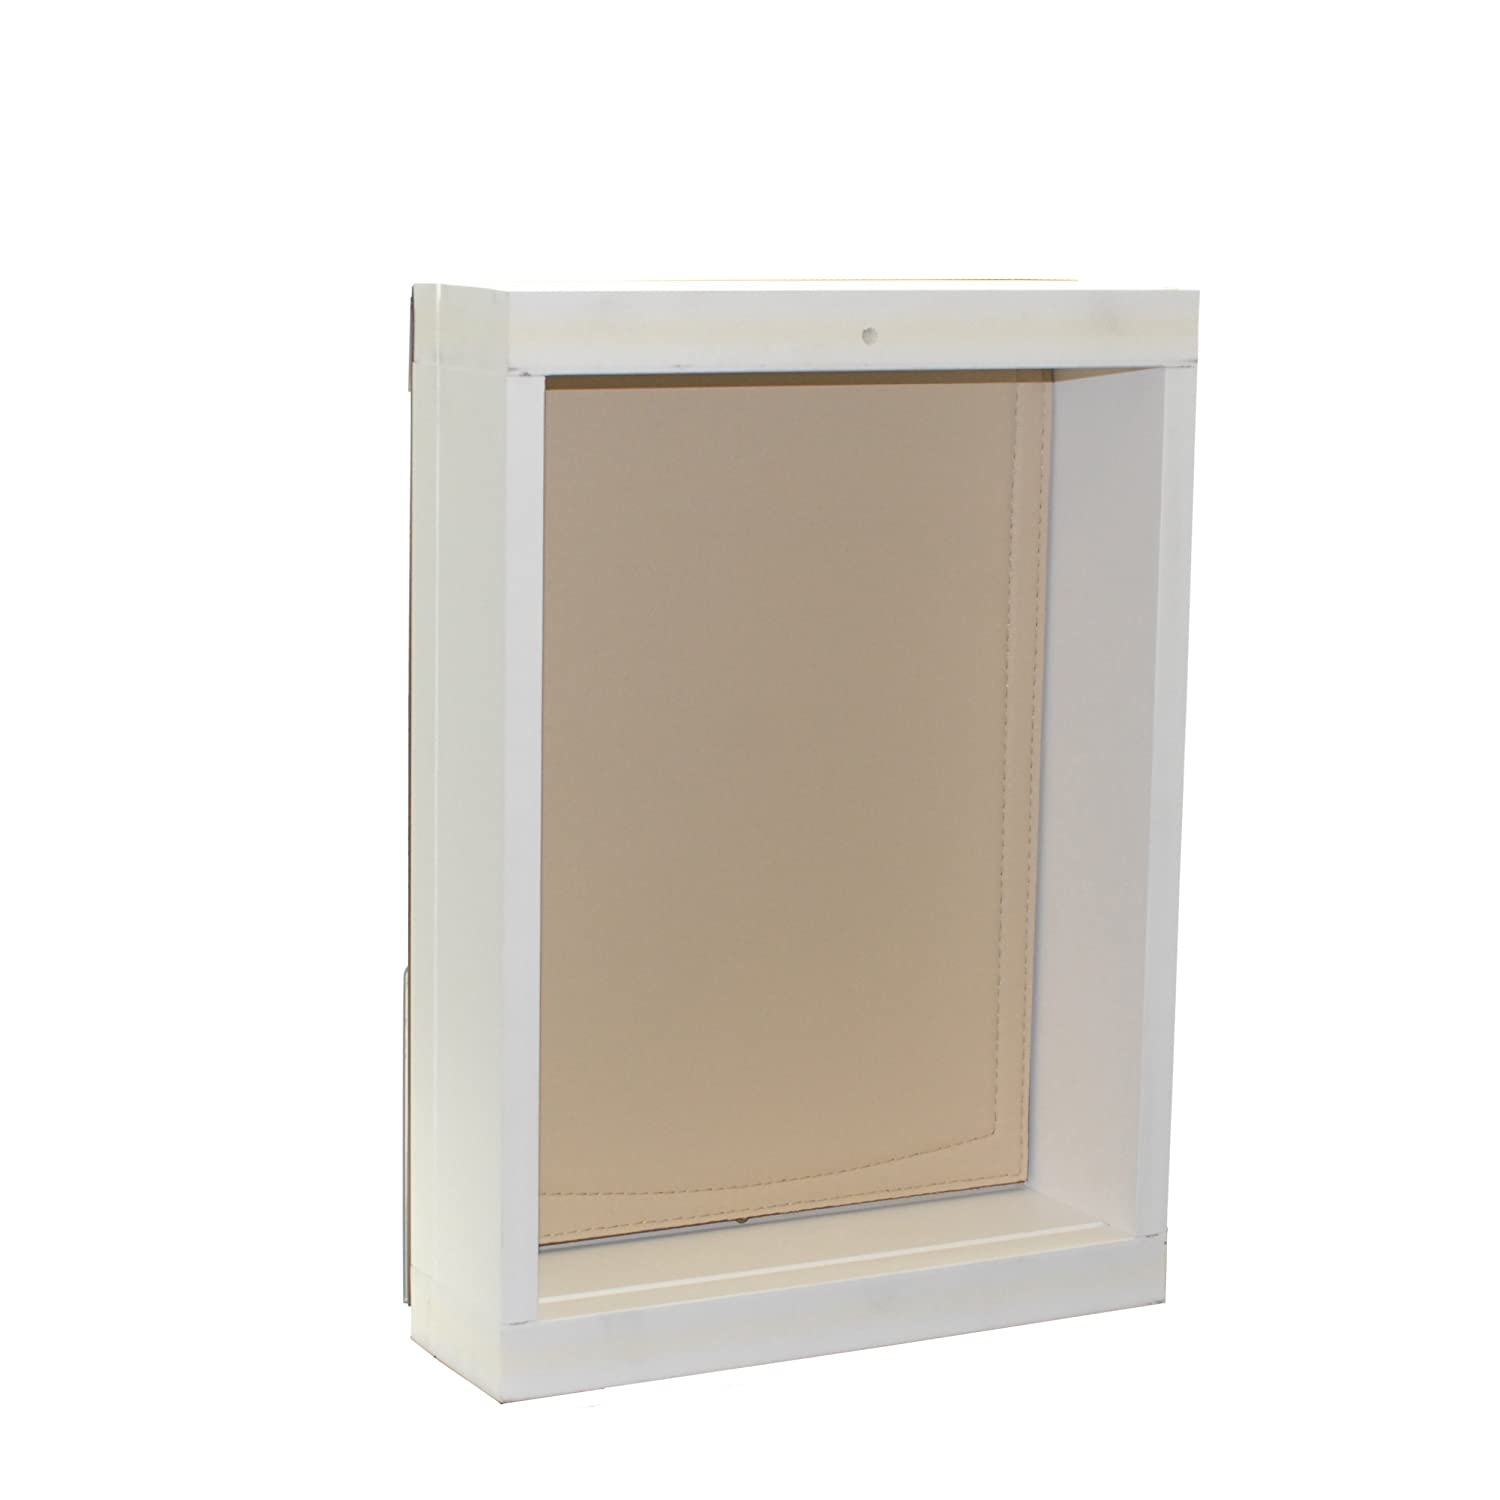 (Medium) Freedom Pet Pass Wall-Mounted Energy-Efficient, Extreme Weather Dog Door with Insulated Flap